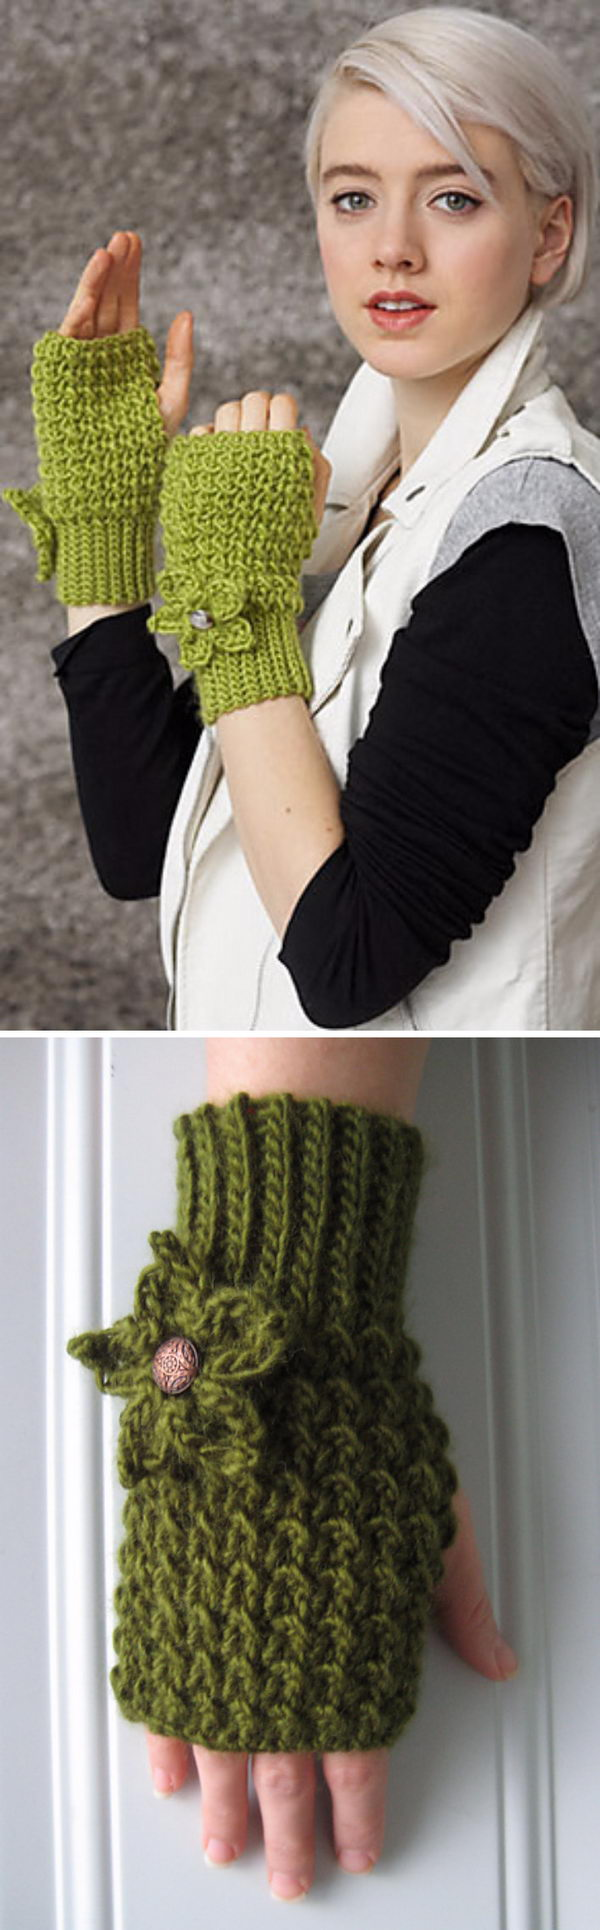 Mossy Mitts.